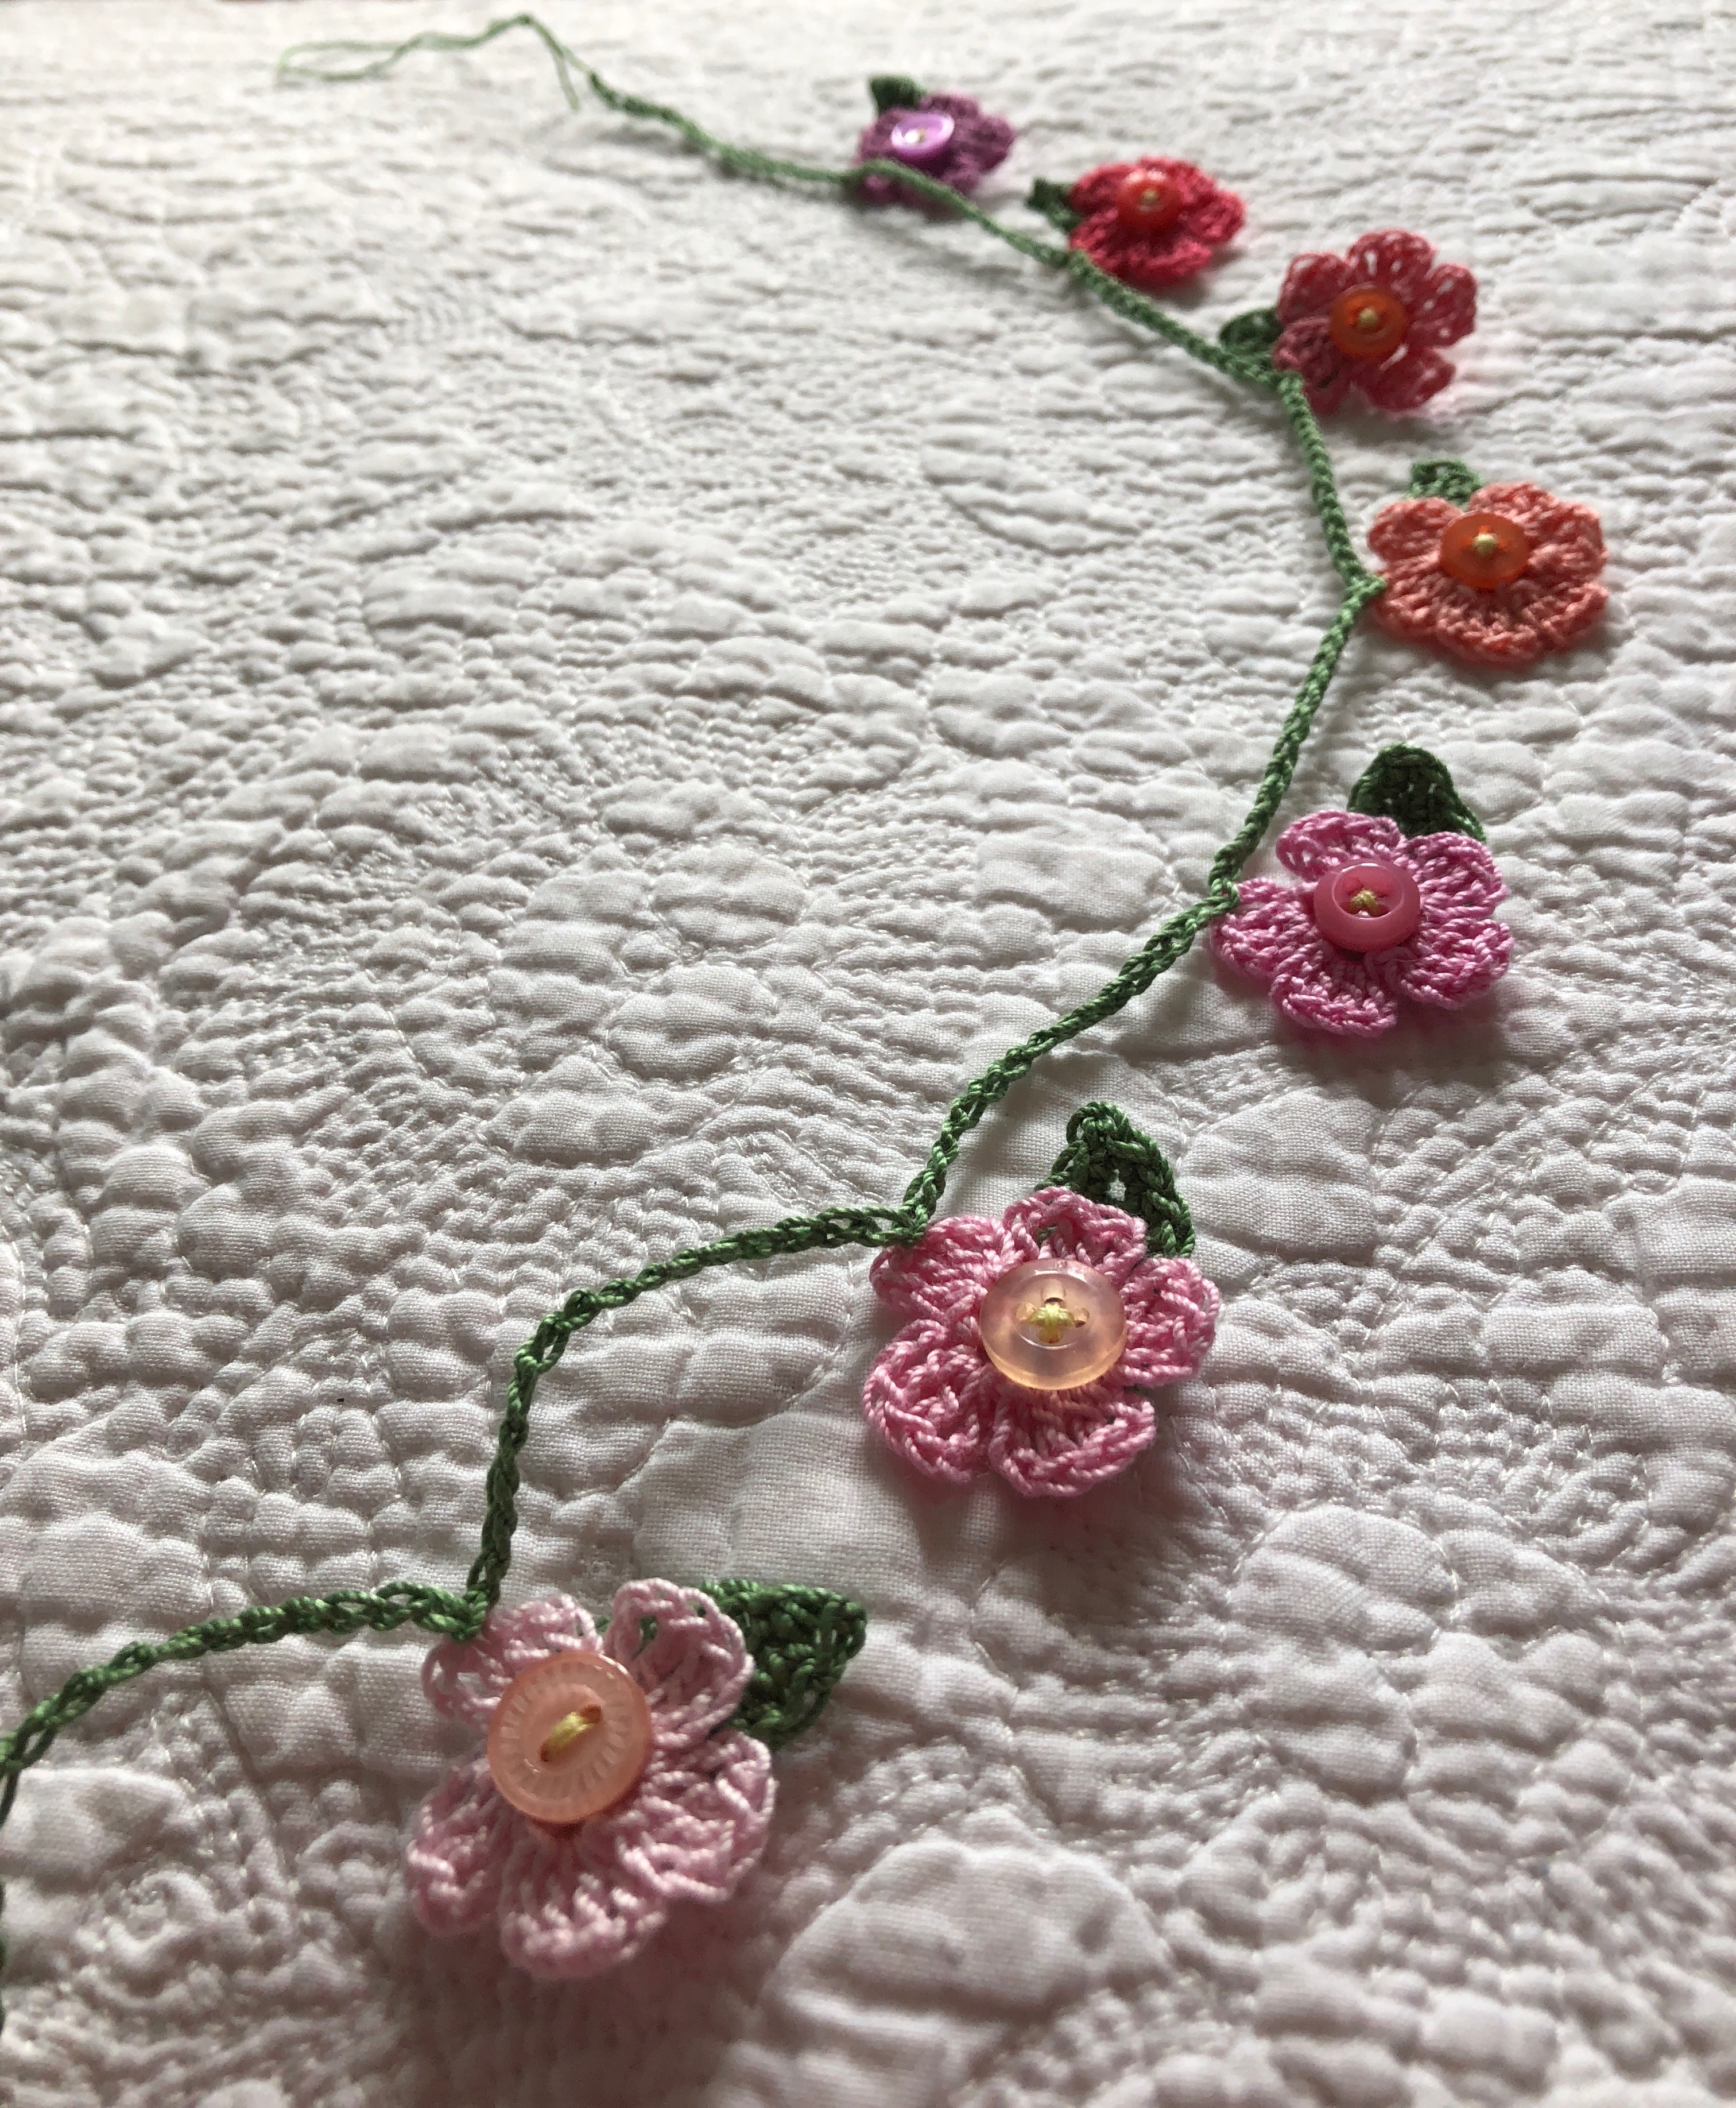 A handmade, crocheted garland of tiny flowers and leaves with a button detailing. The flowers are in a gradient of pastel shades from pale pink to purple.